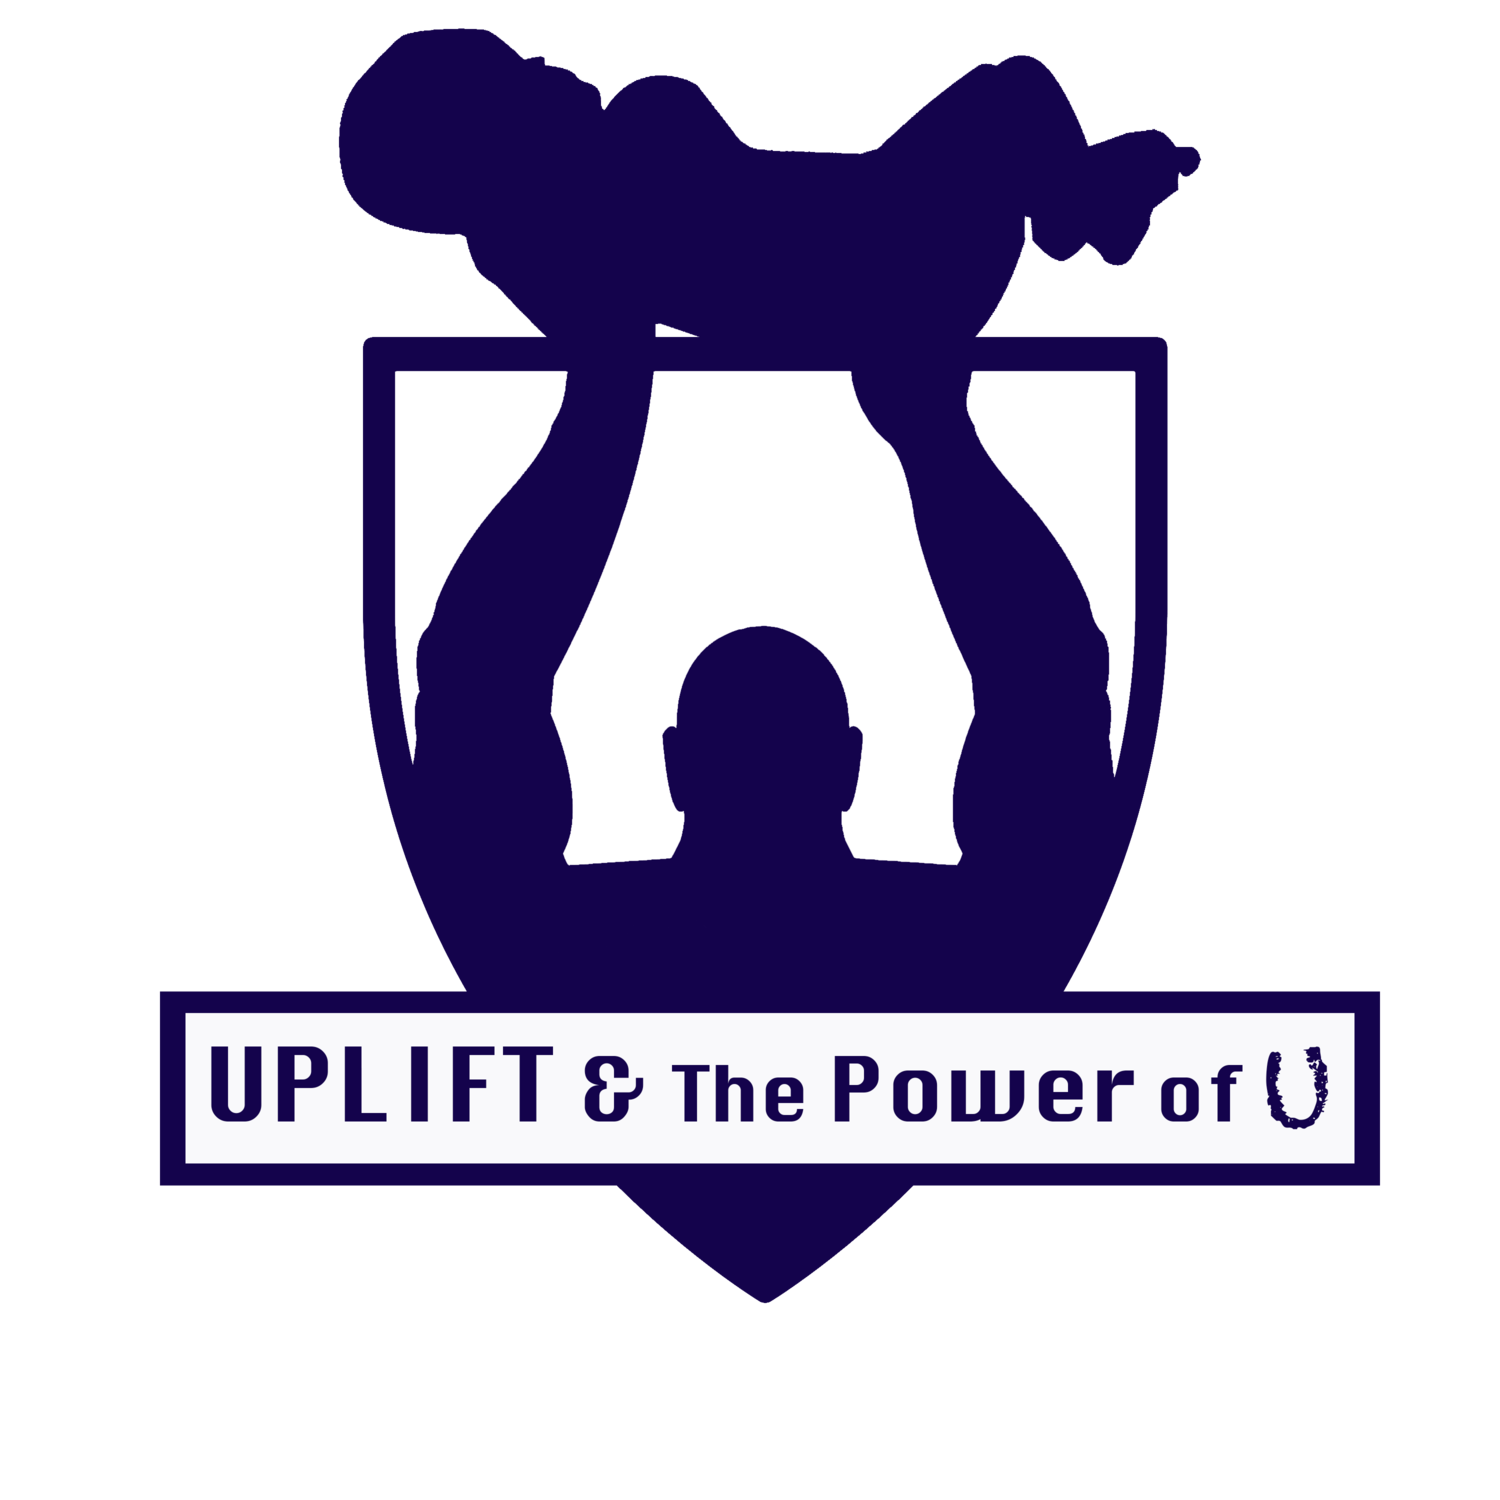 The Power of U